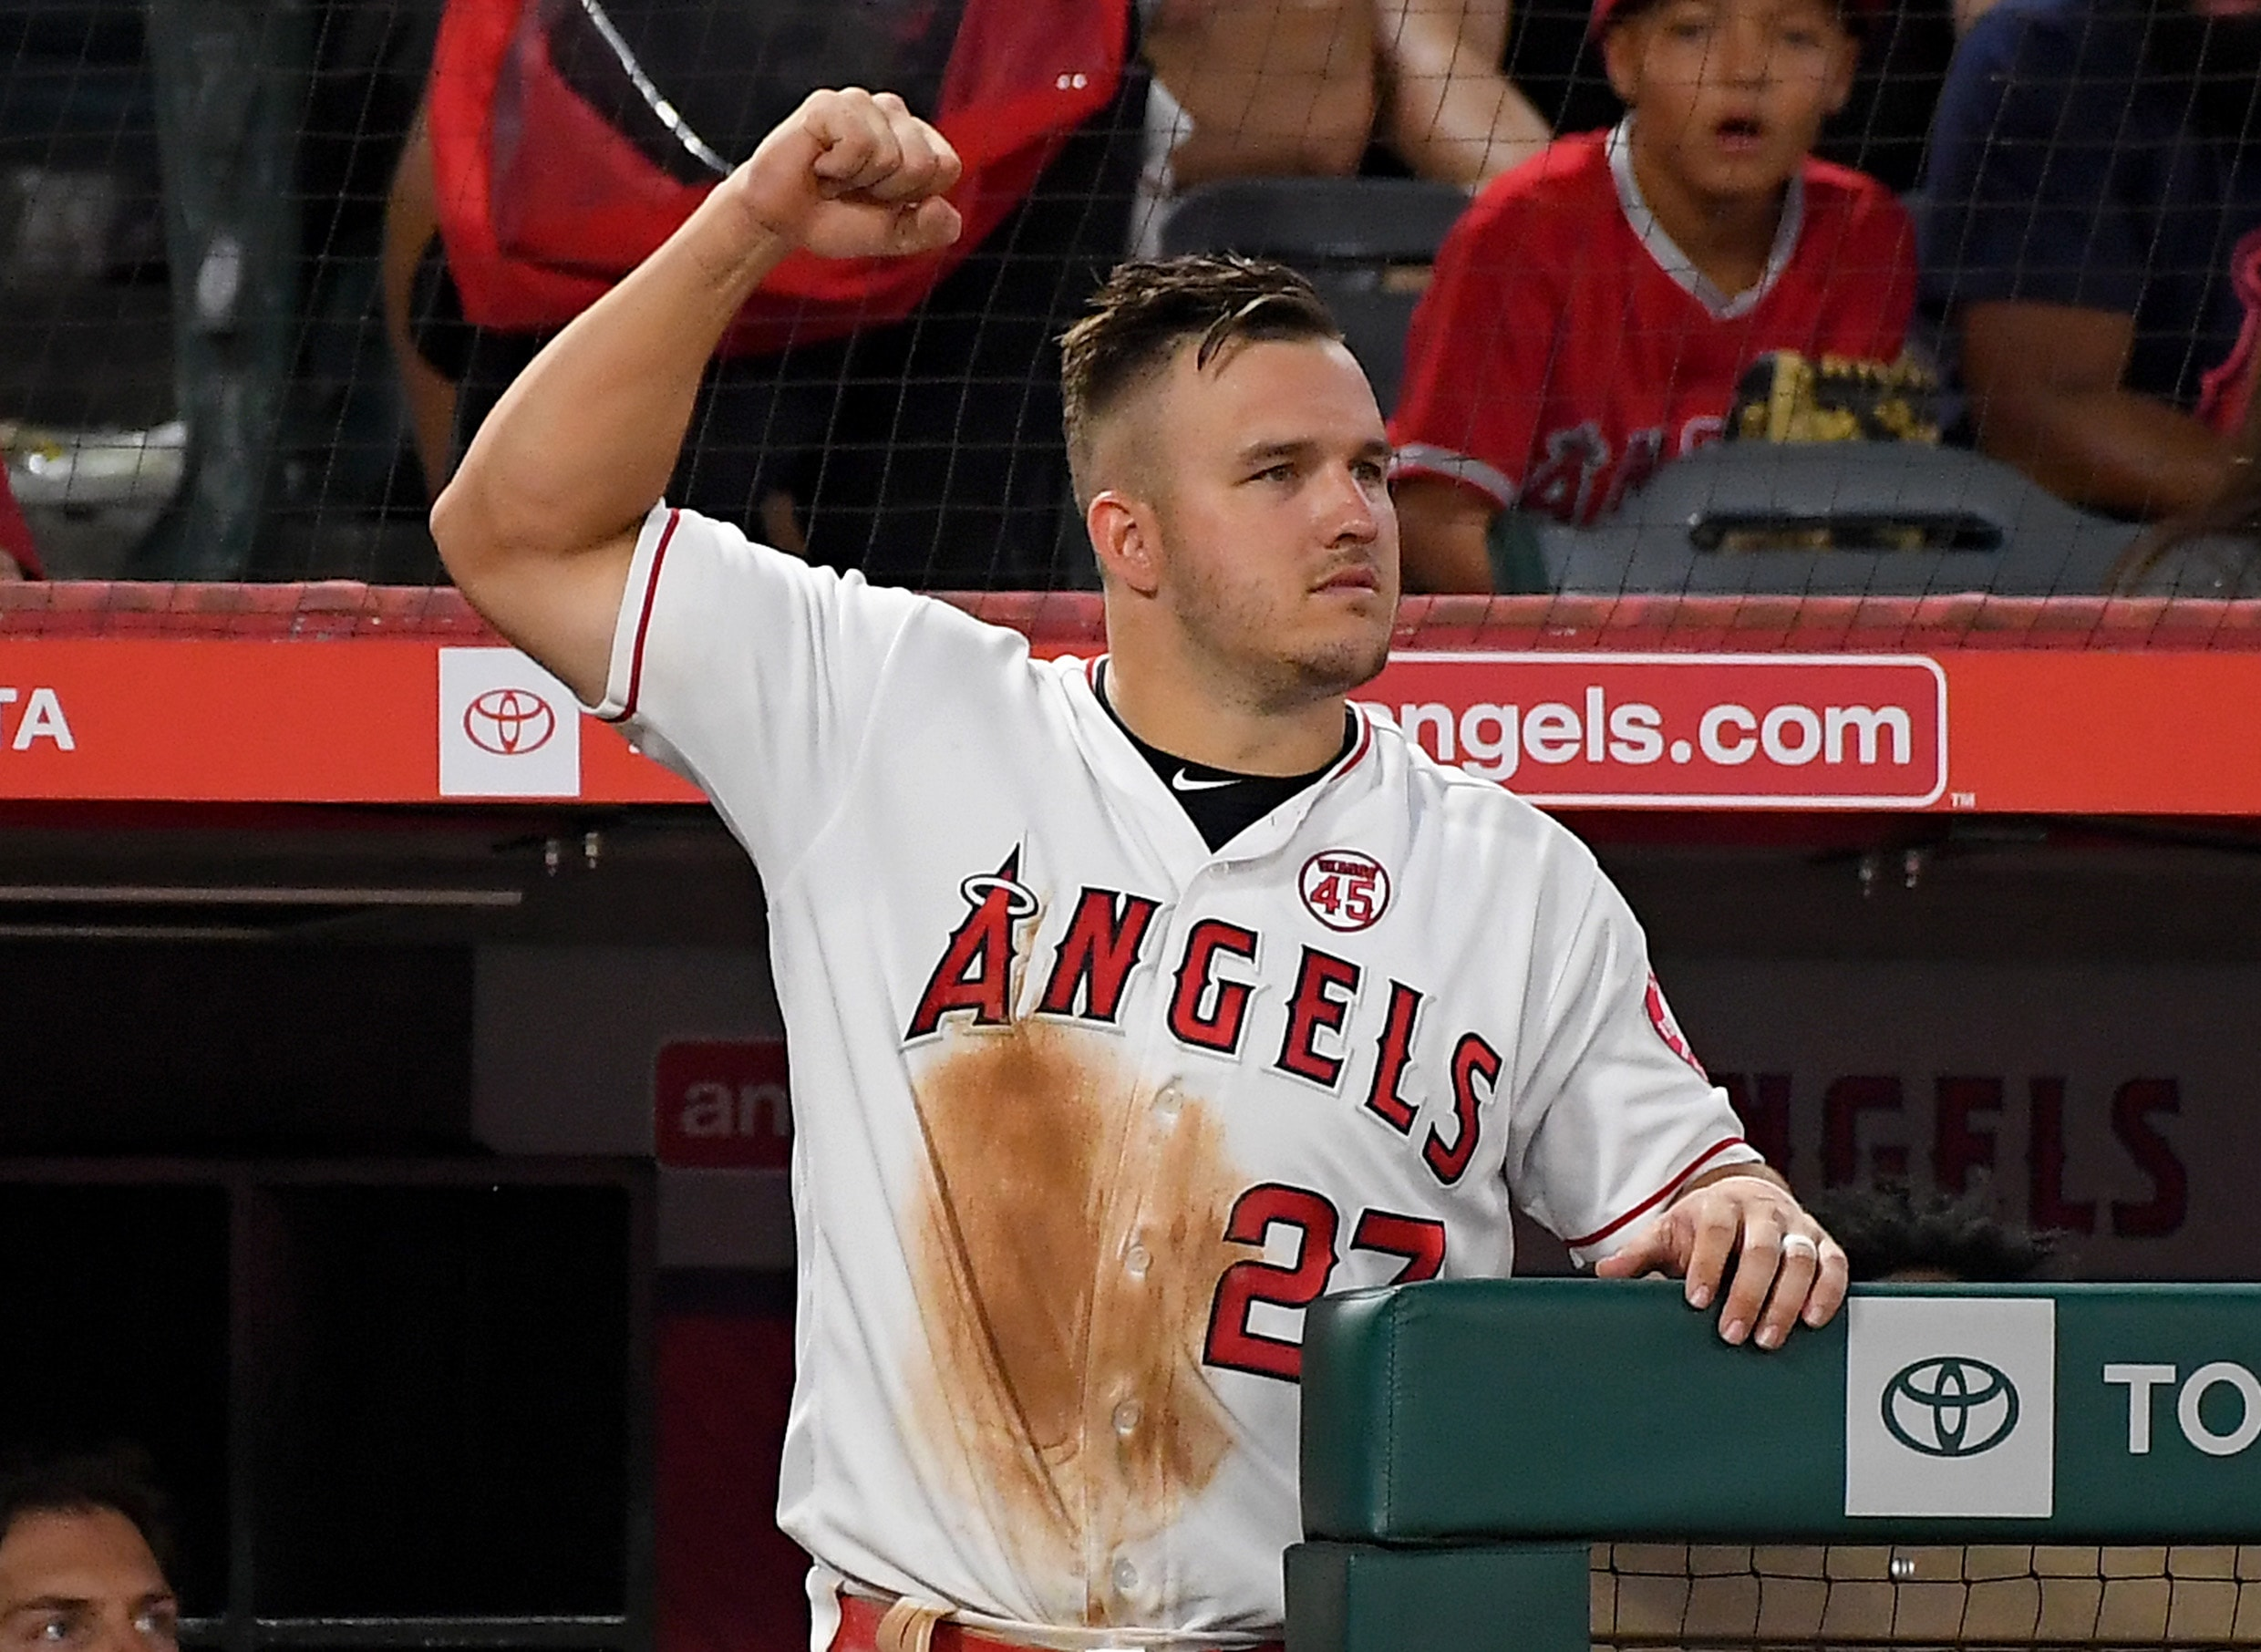 Angels outfielder Mike Trout entered the 2020 season with a $37.7 million salary, highest in MLB. (Jayne Kamin-Oncea-USA TODAY Sports)